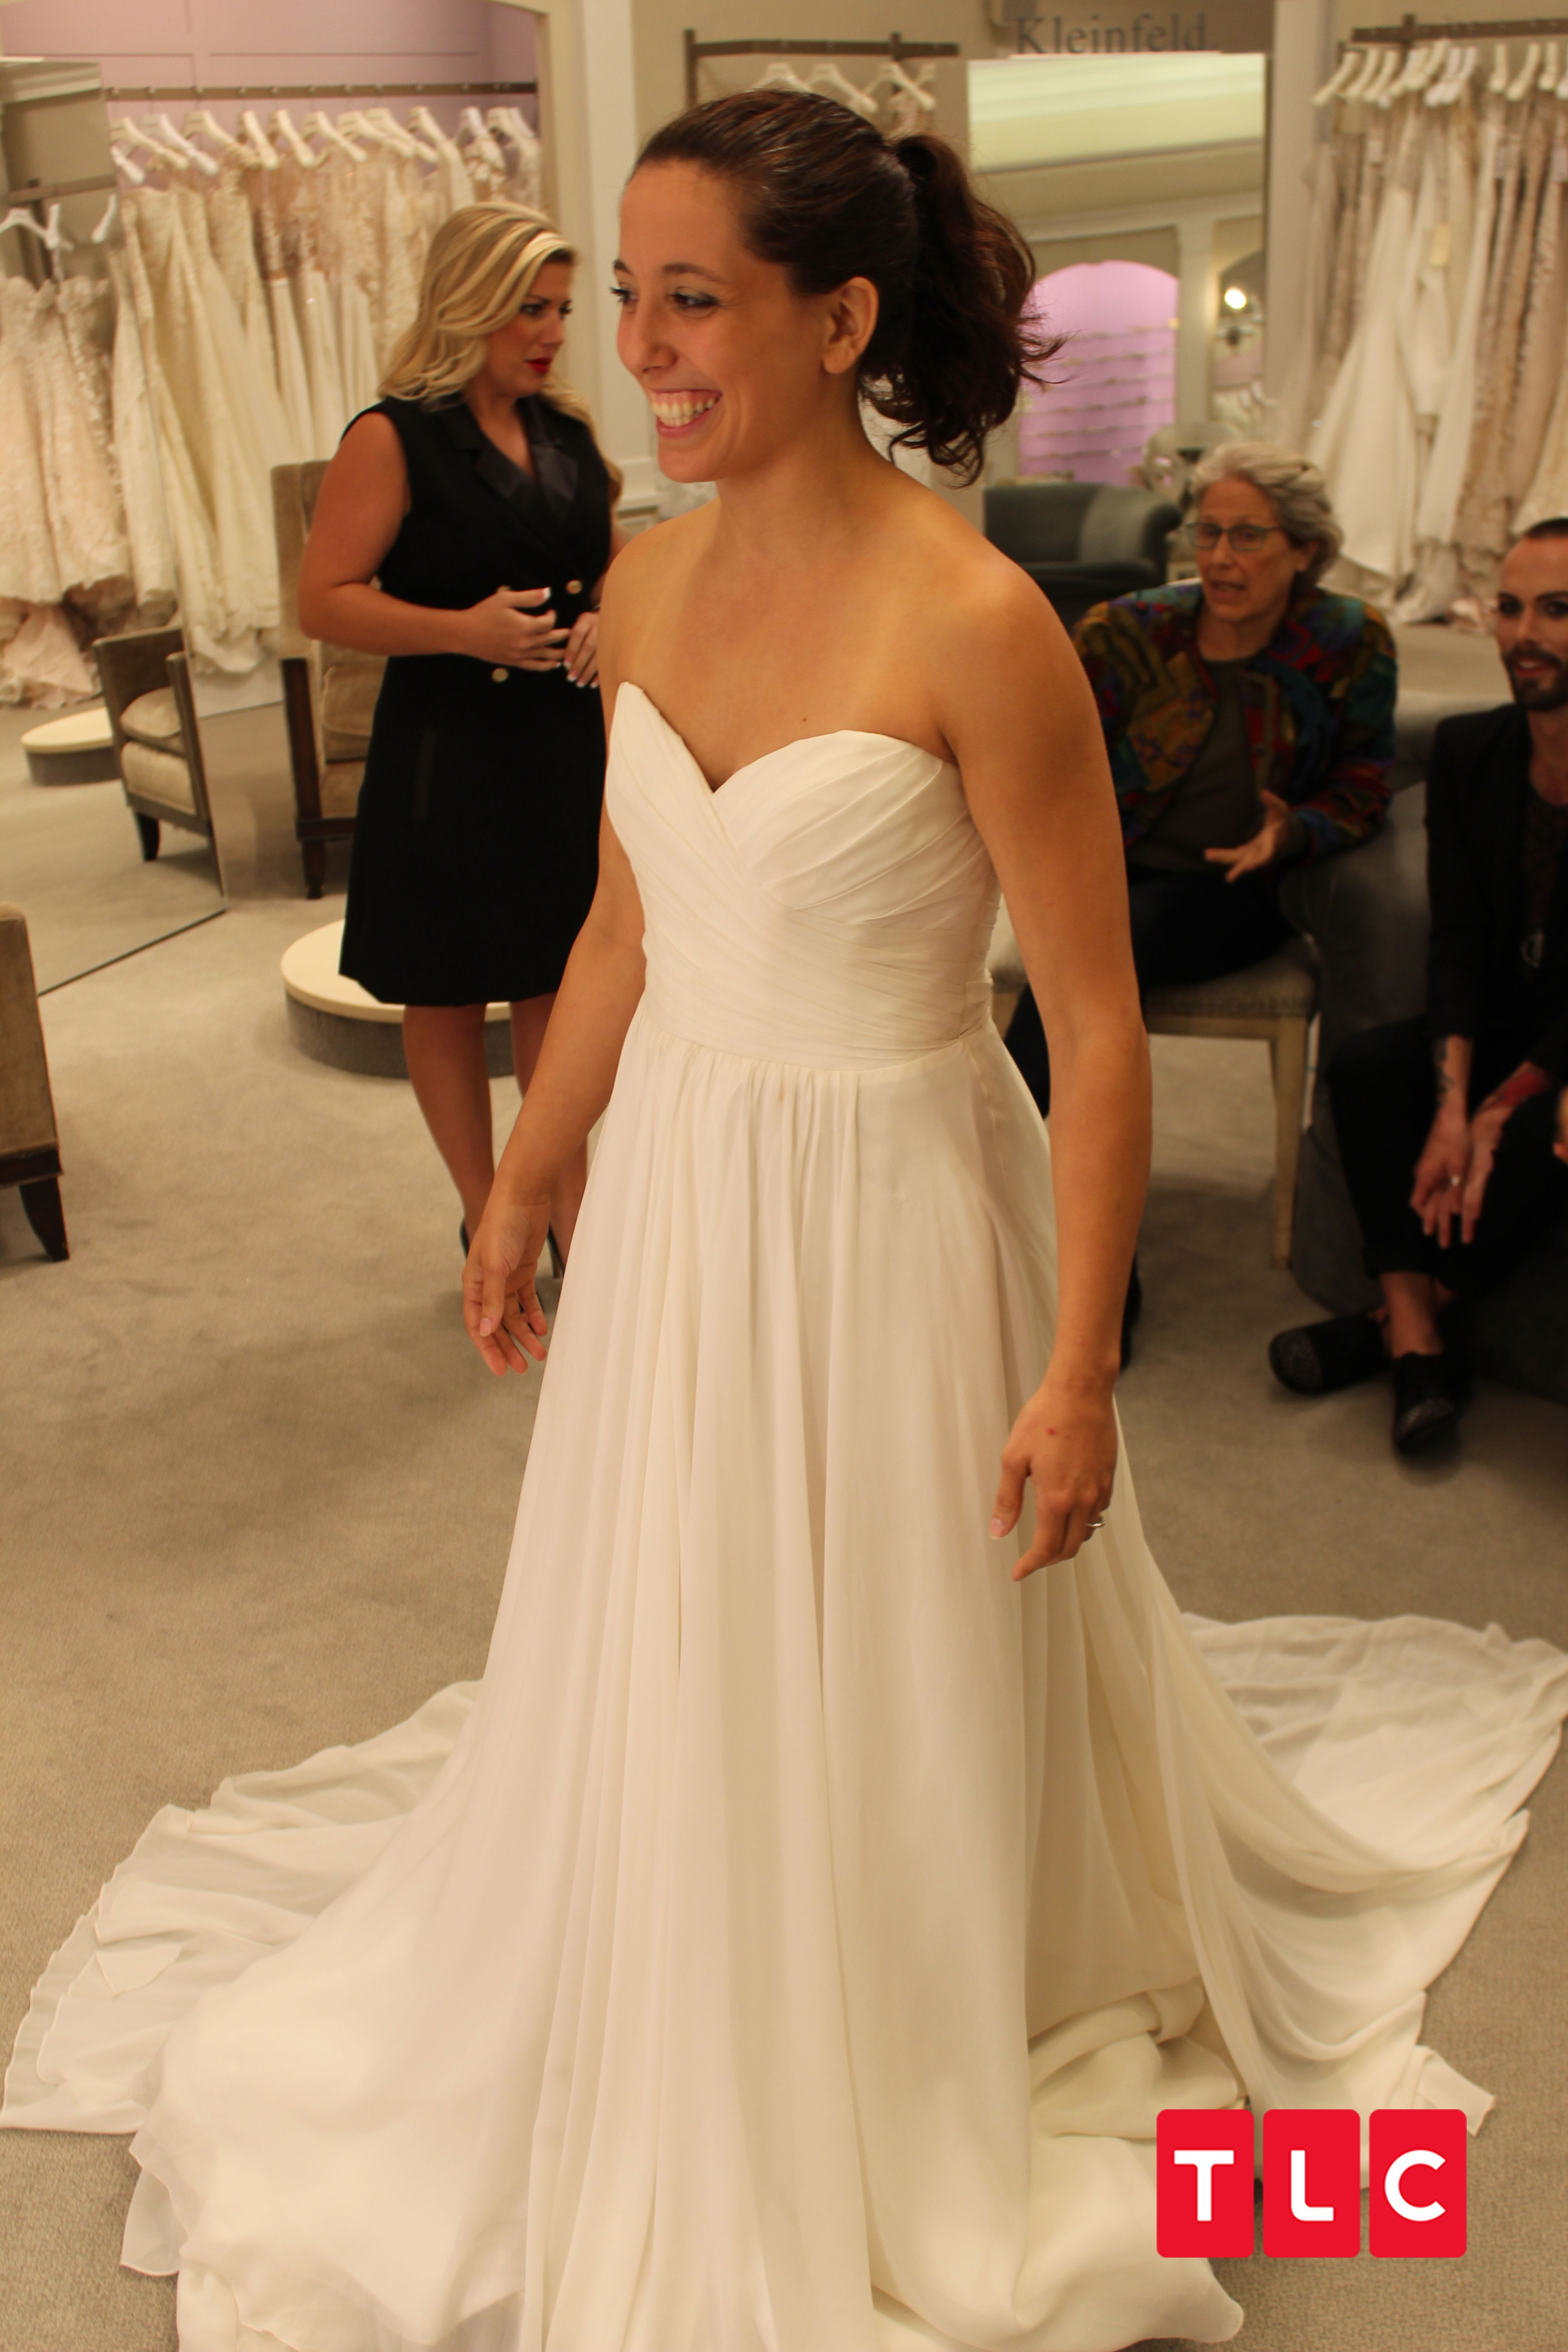 Wedding Dresses Wedding Dress Wedding Bride Wedding Dress Shopping Marriage Say Yes To The Dress We Royal Wedding Dress Royal Wedding Gowns Royal Brides